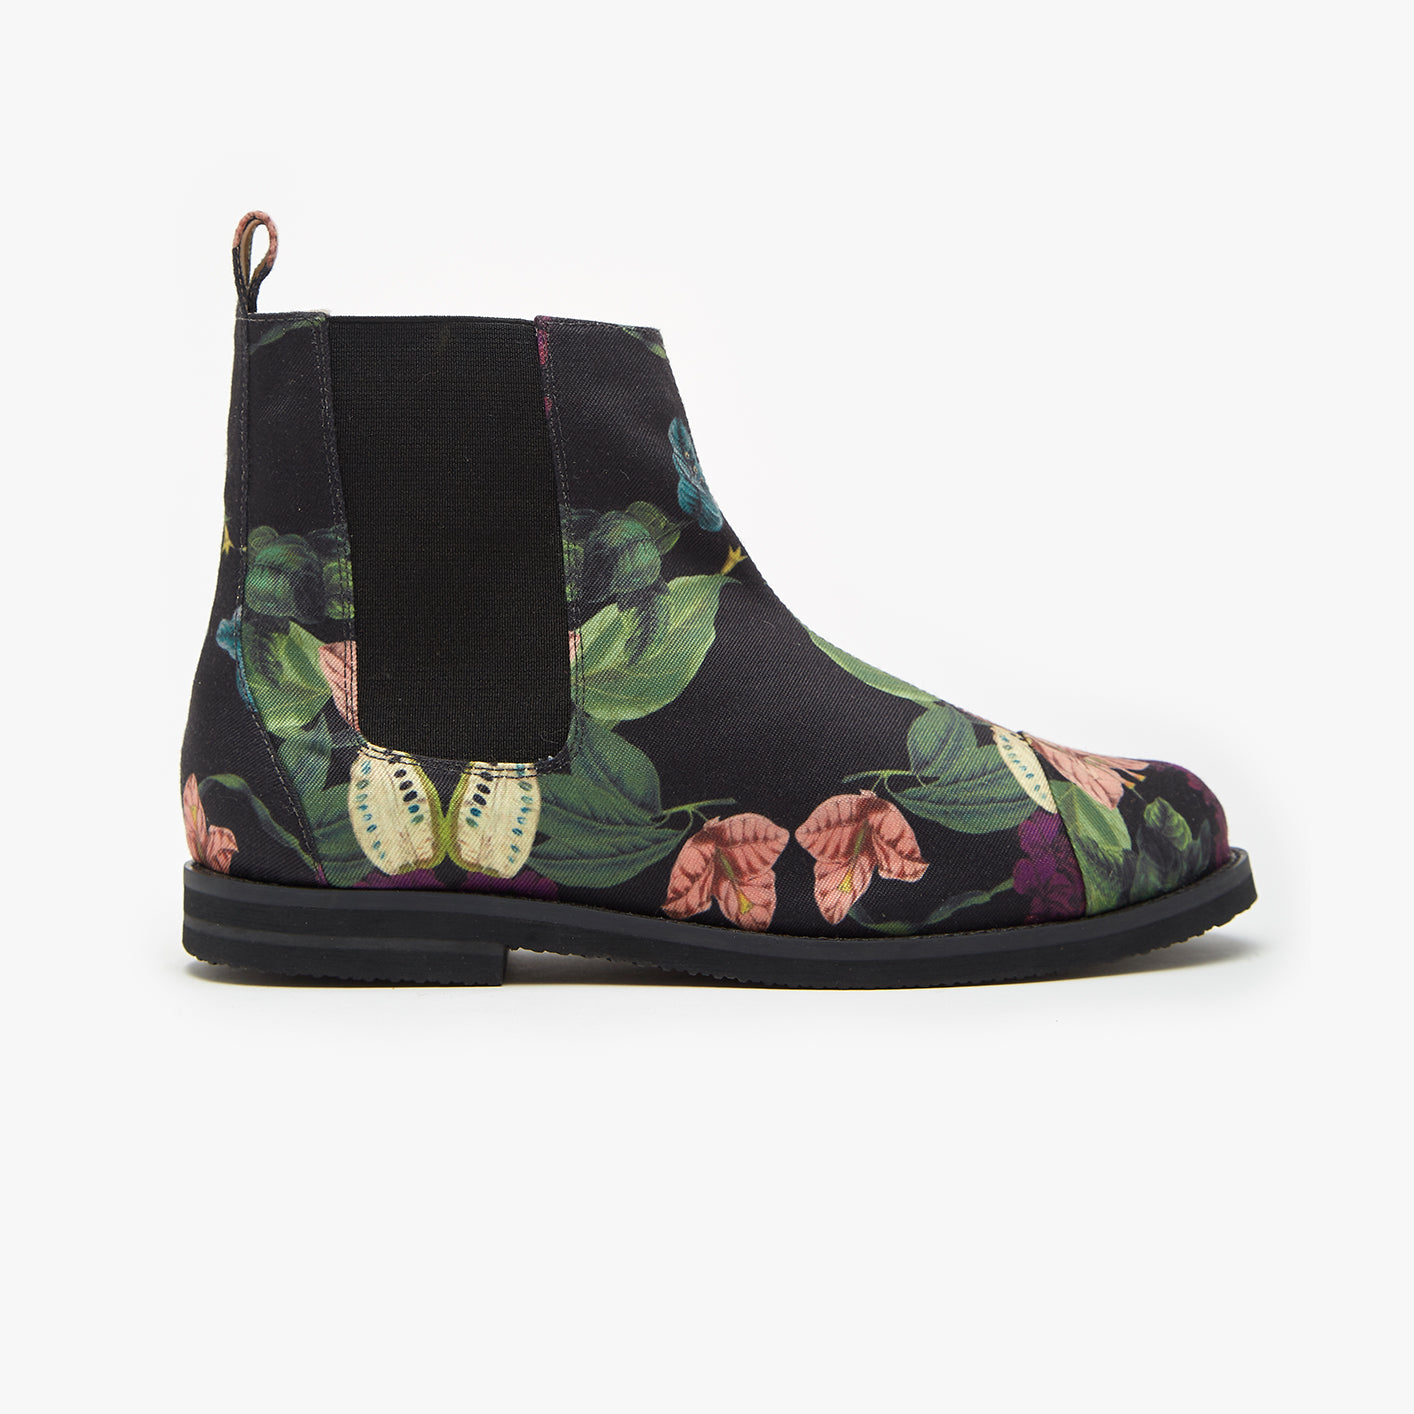 GINECEU CHELSEA BOOT - Insectashoes brasil